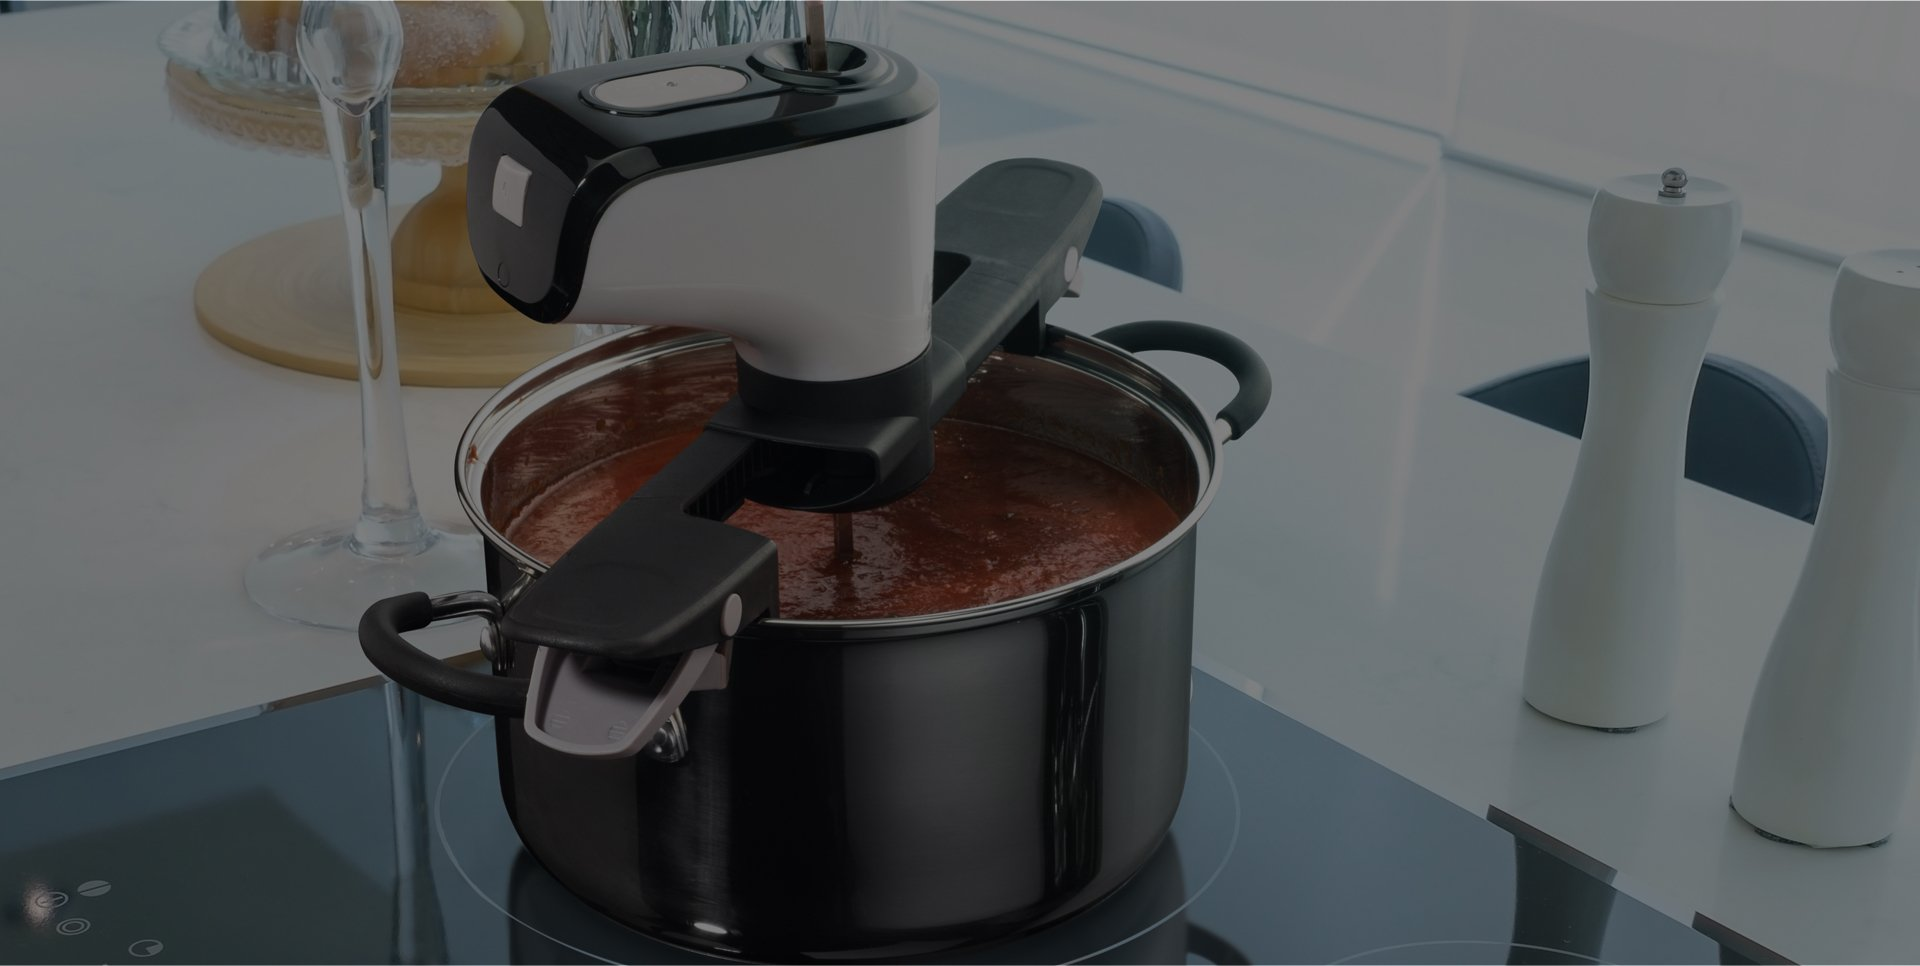 Revolutionize cooking from your couch!